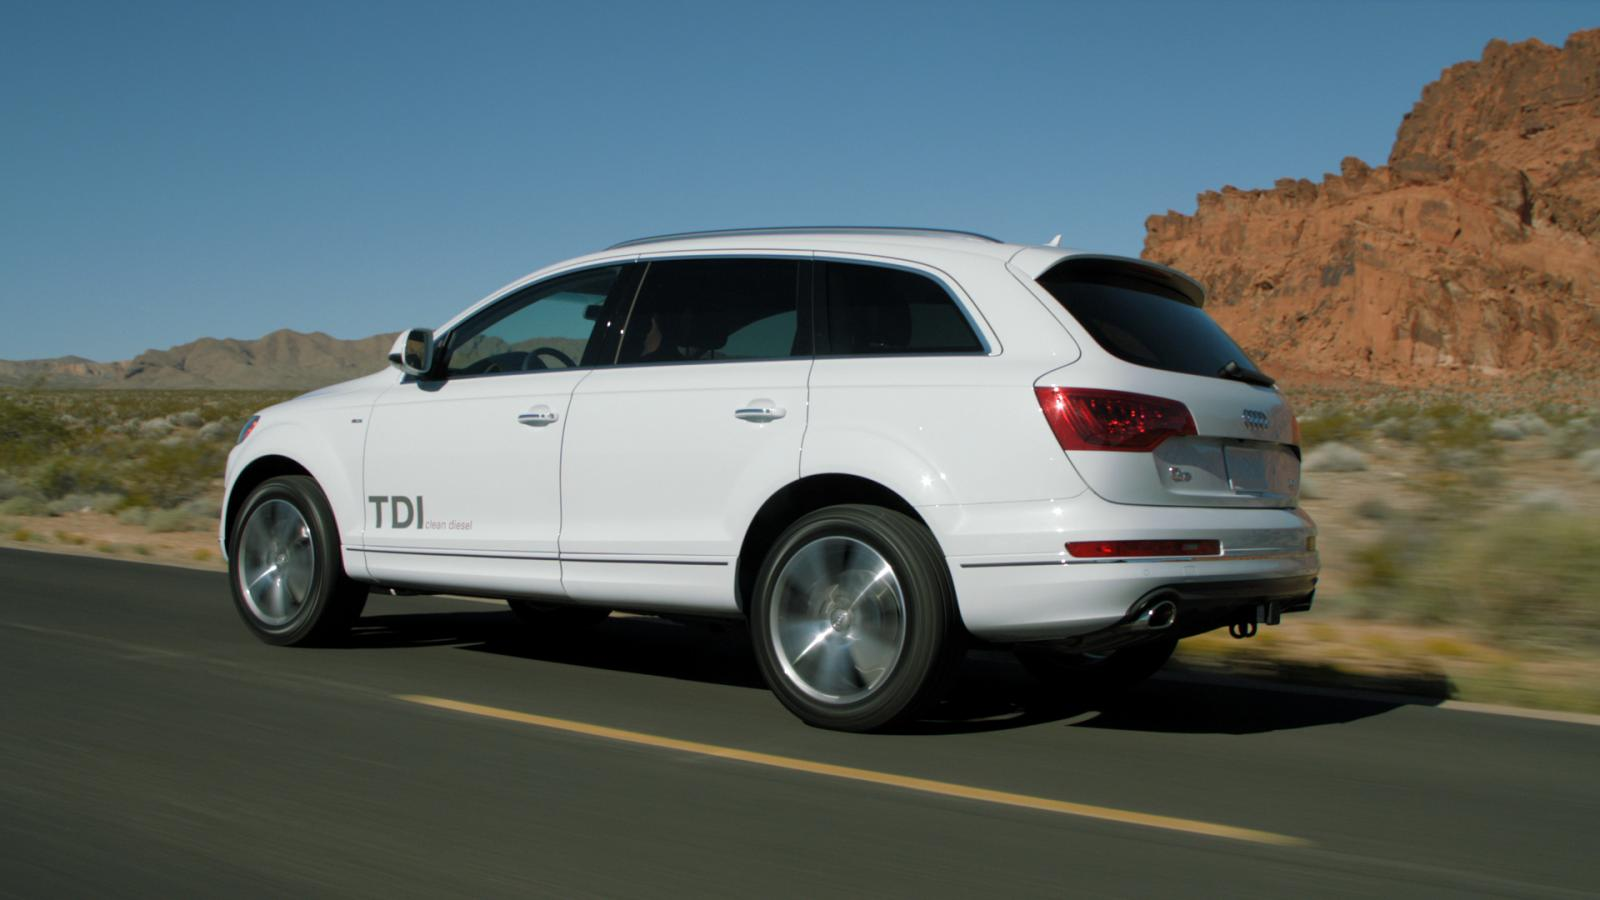 q7 Audi to introduce four new TDI clean diesel models to the U.S. Market at the L.A. Auto Show